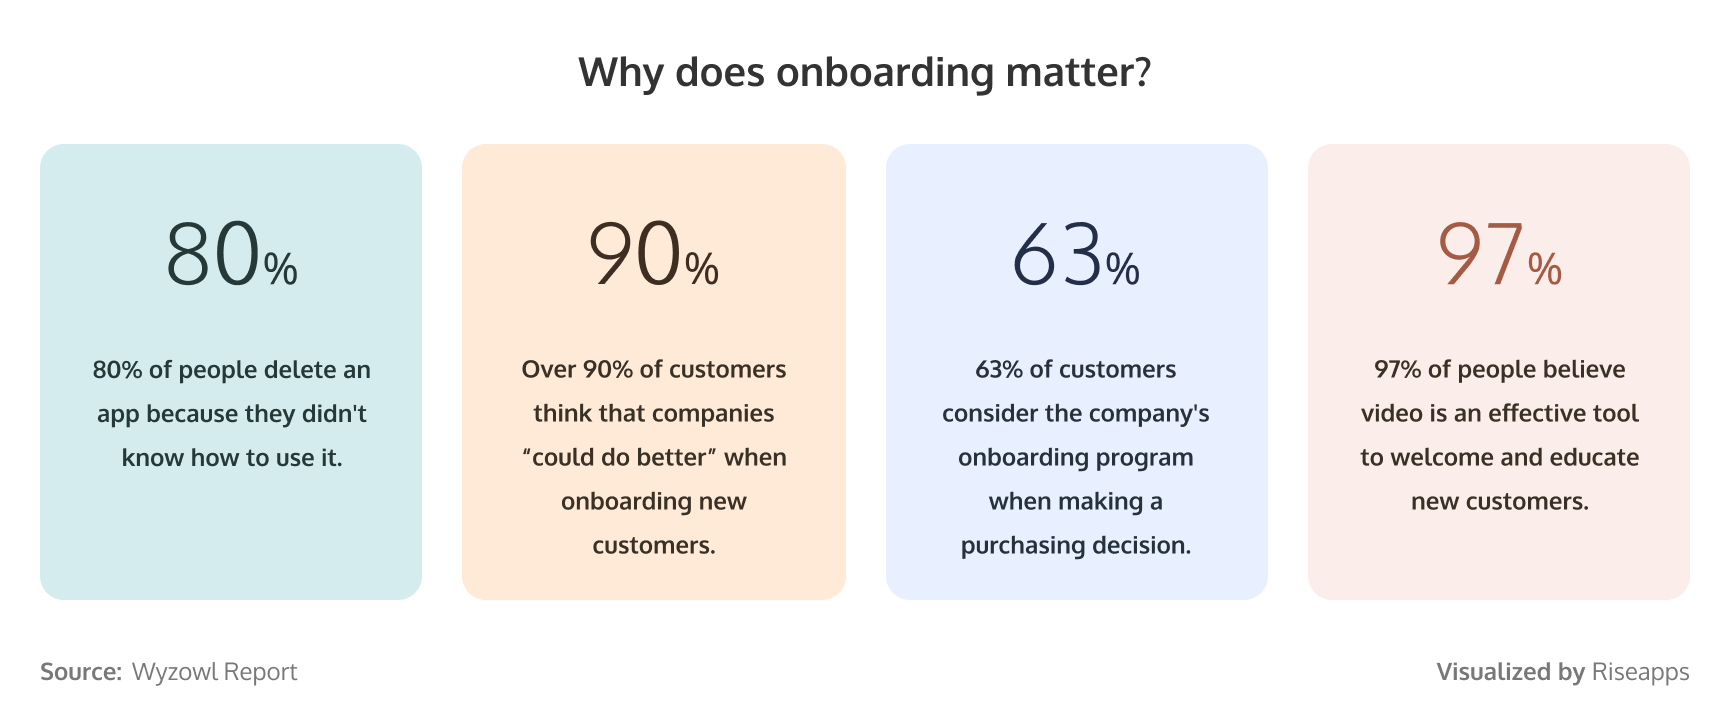 Why does onboarding matter?